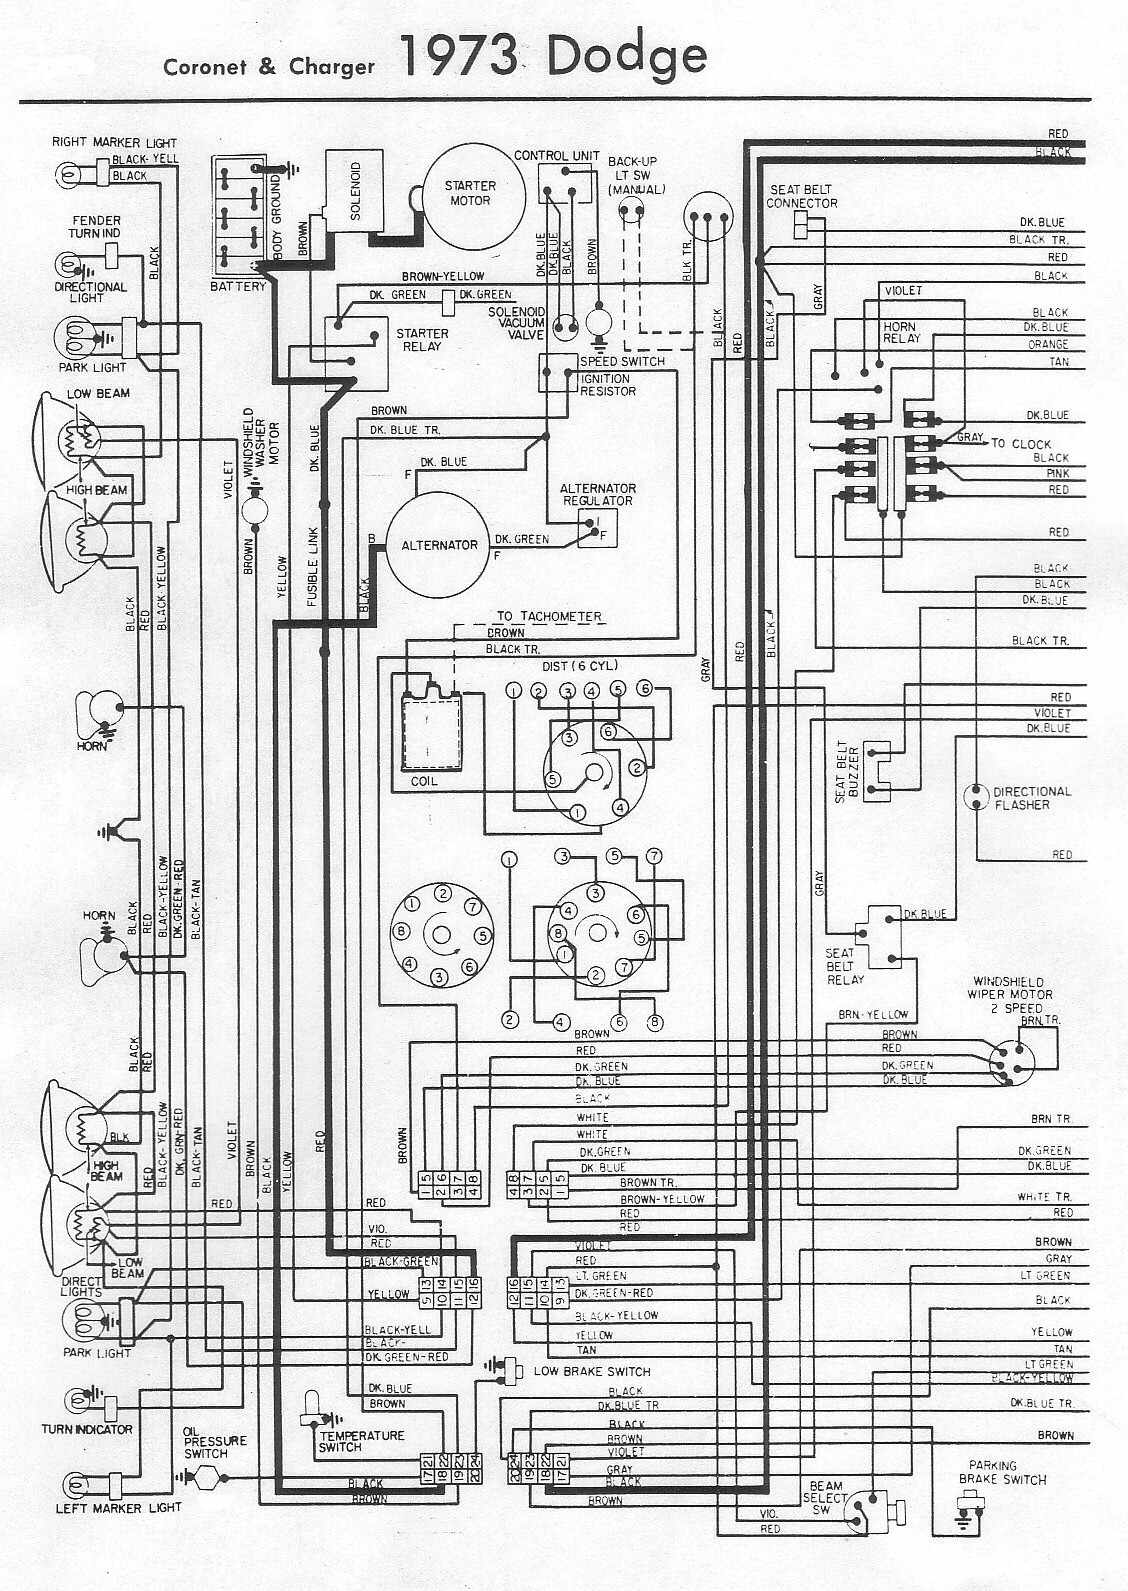 1973 dodge truck wiring diagram data wiring schemes 1973 Dodge W200 Wiring Diagram 1976 dodge truck wiring diagram